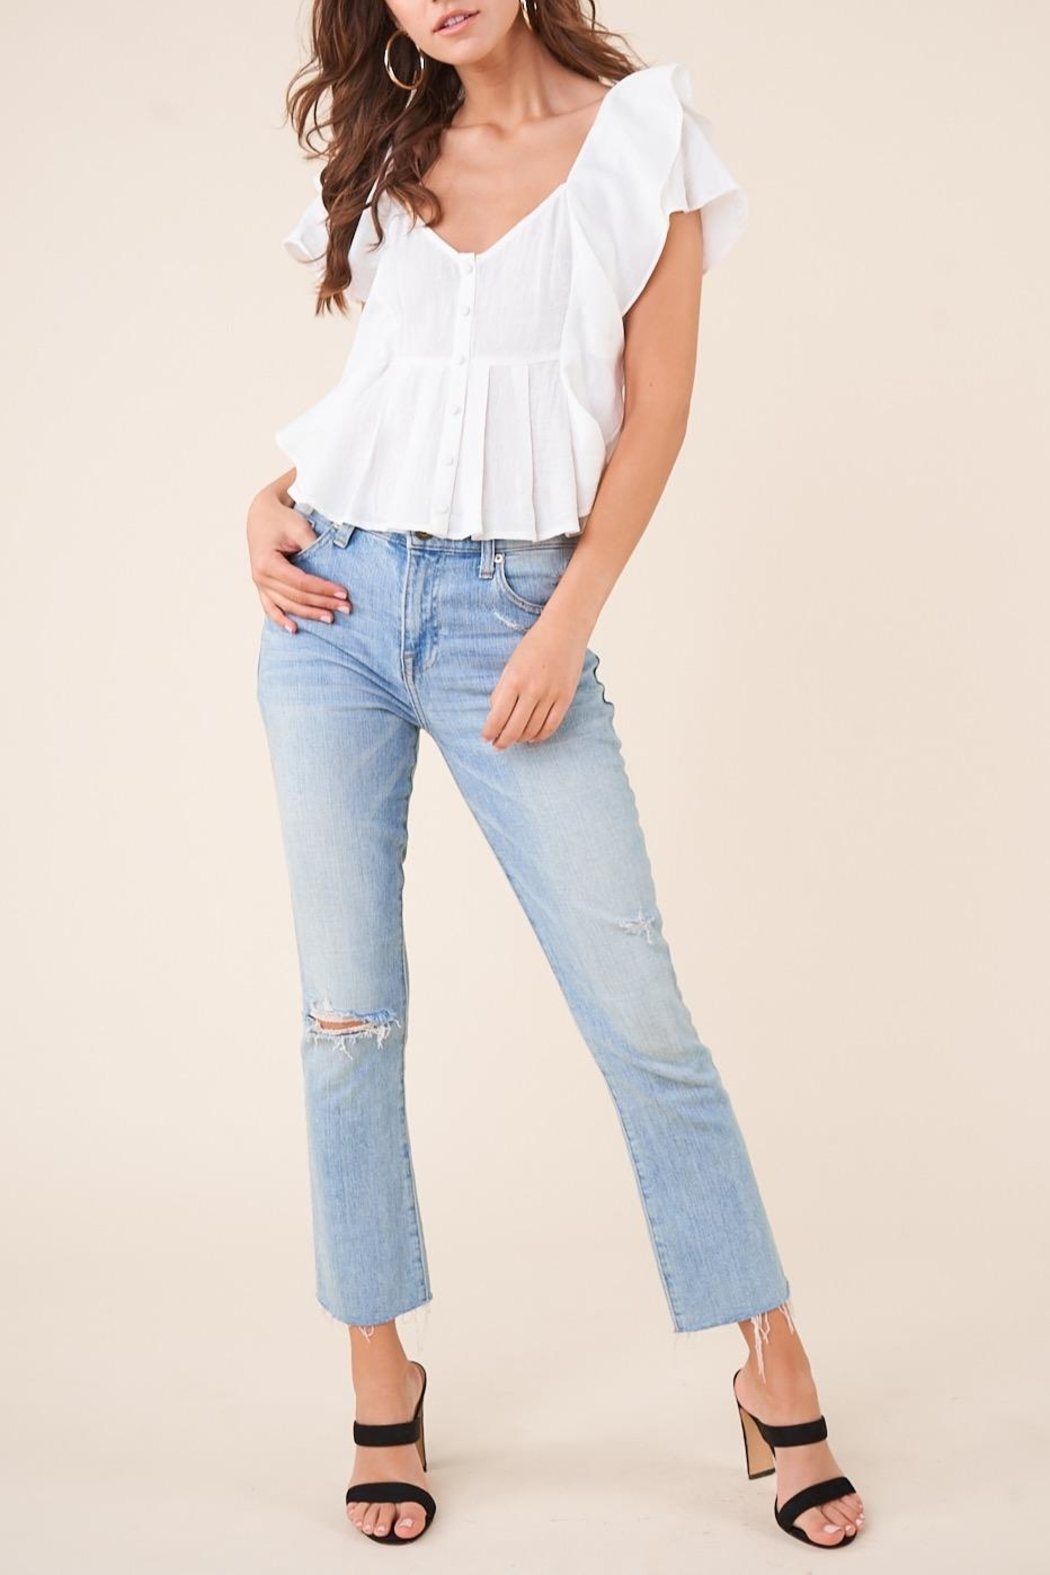 Sugarlips White Ruffle Button-Down Blouse - Side Cropped Image